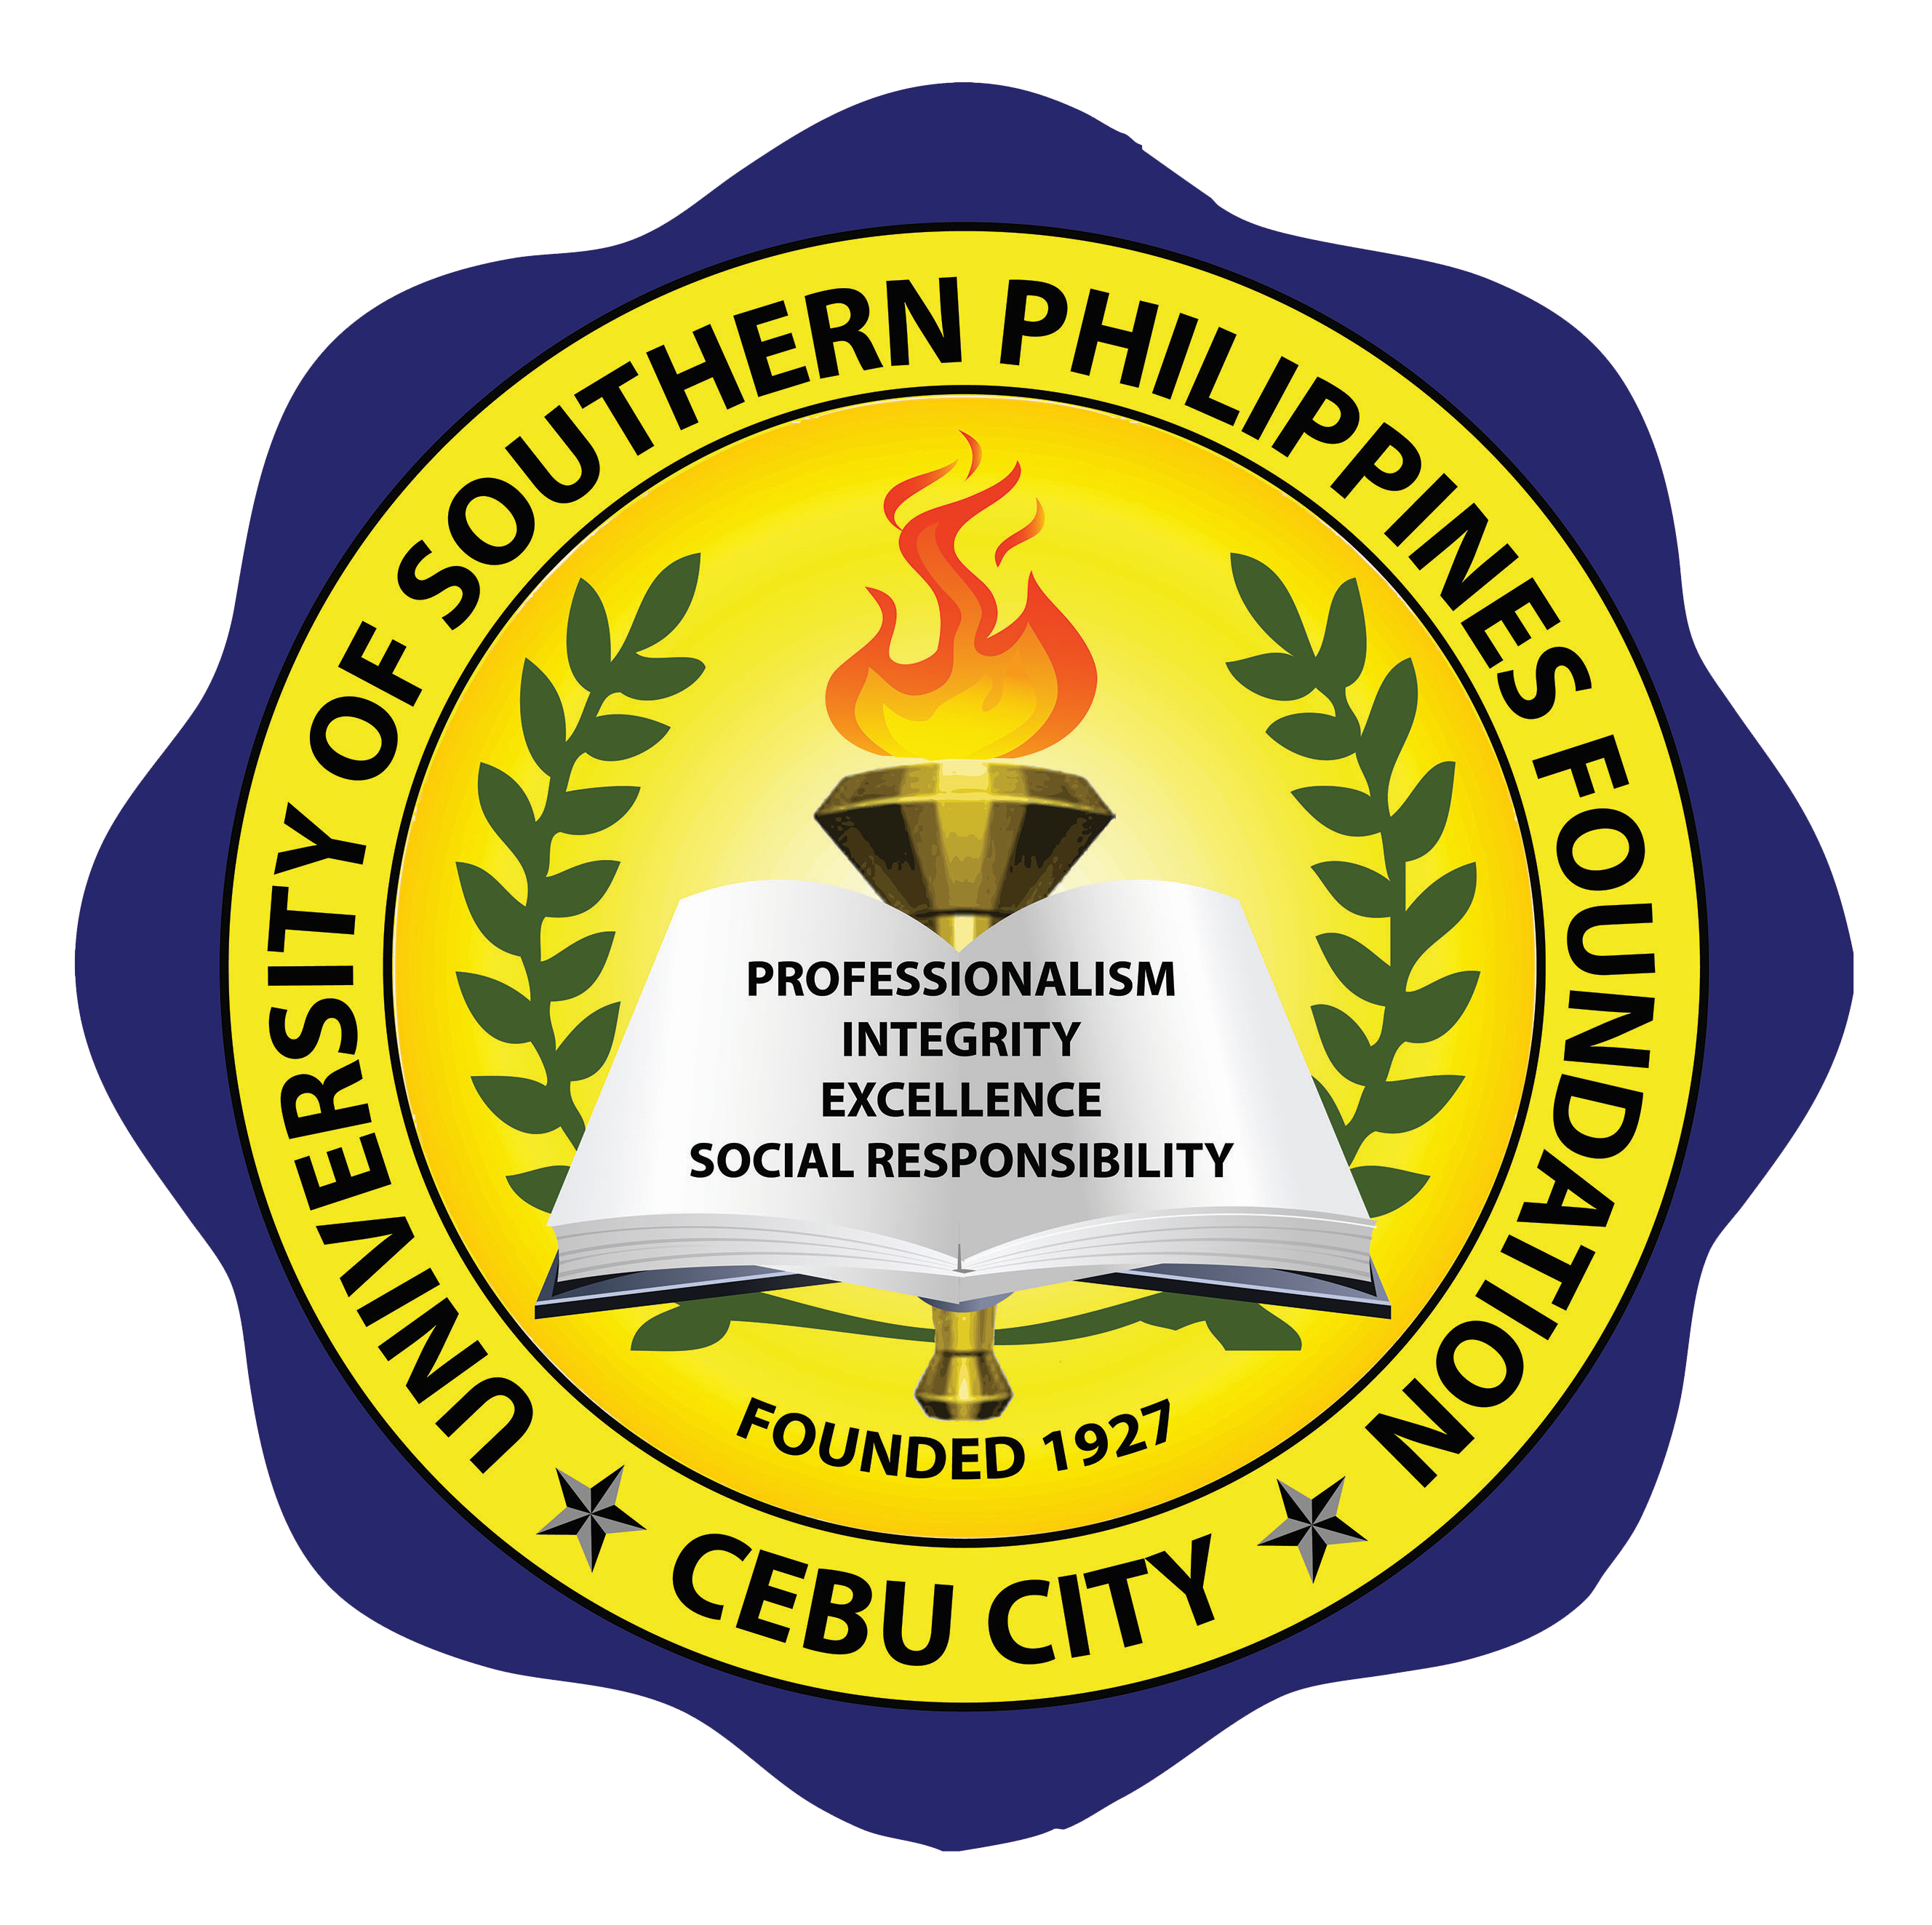 University of Southern Philippines Foundation Logo